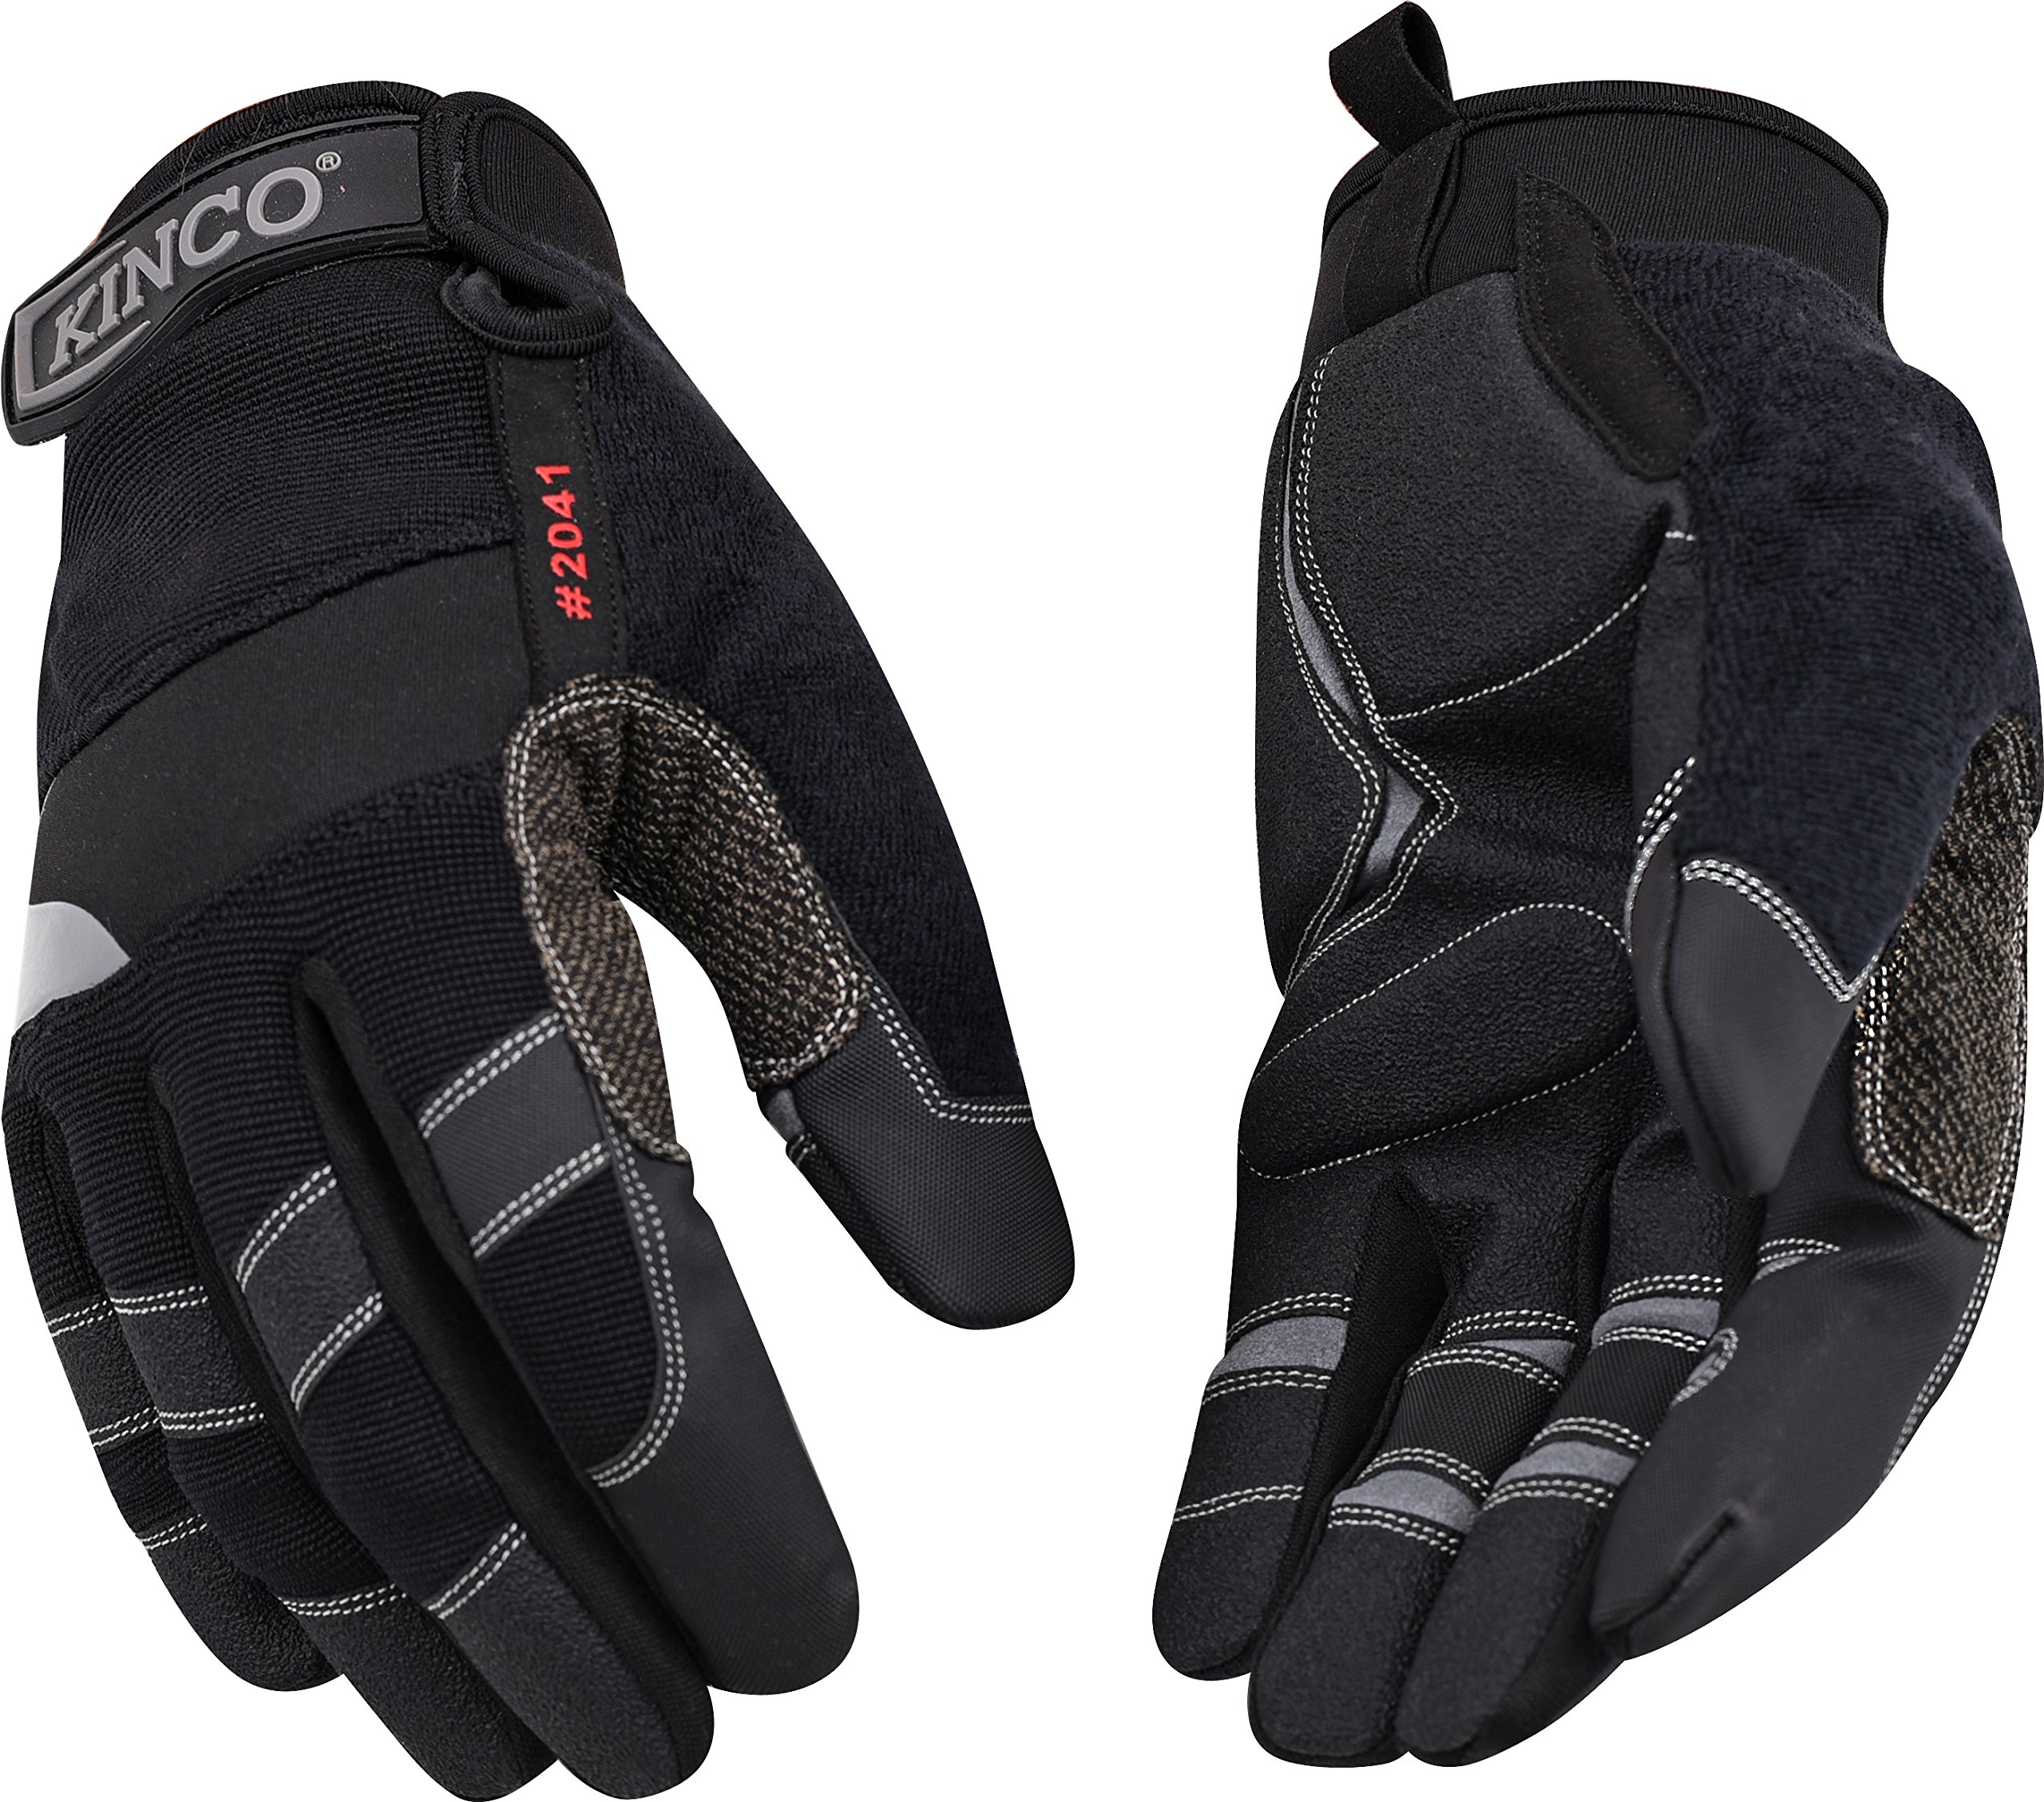 Kinco 2041 KincoPro Unlined General Medium Duty Synthetic Leather Glove with Black Back, Work, X-Large, Gray (Pack of 6 Pairs) by KINCO INTERNATIONAL